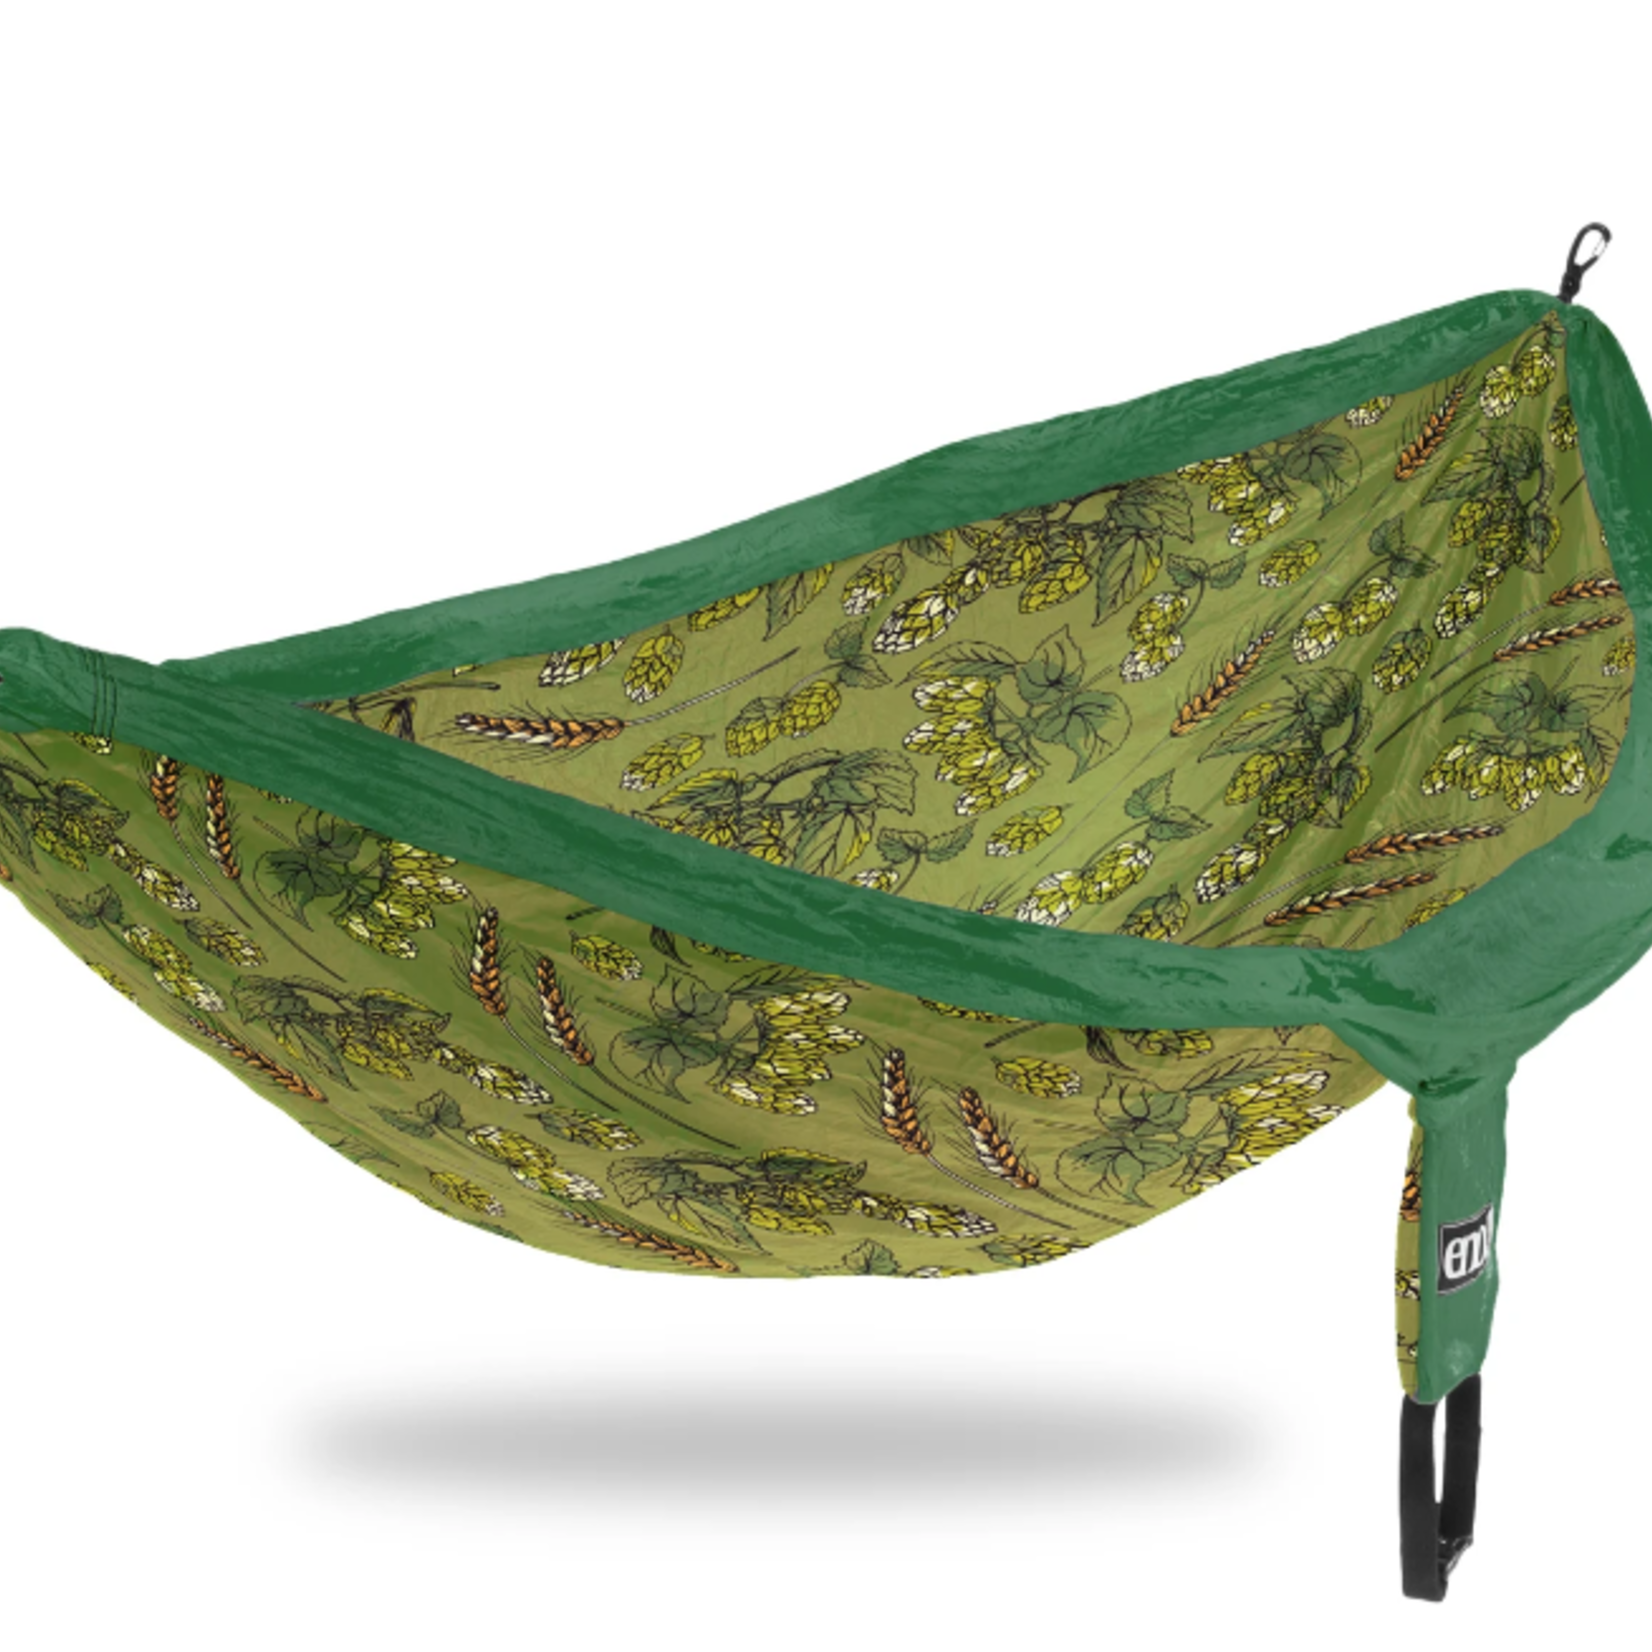 ENO - Eagles Nest Outfitters ENO DoubleNest Hammock